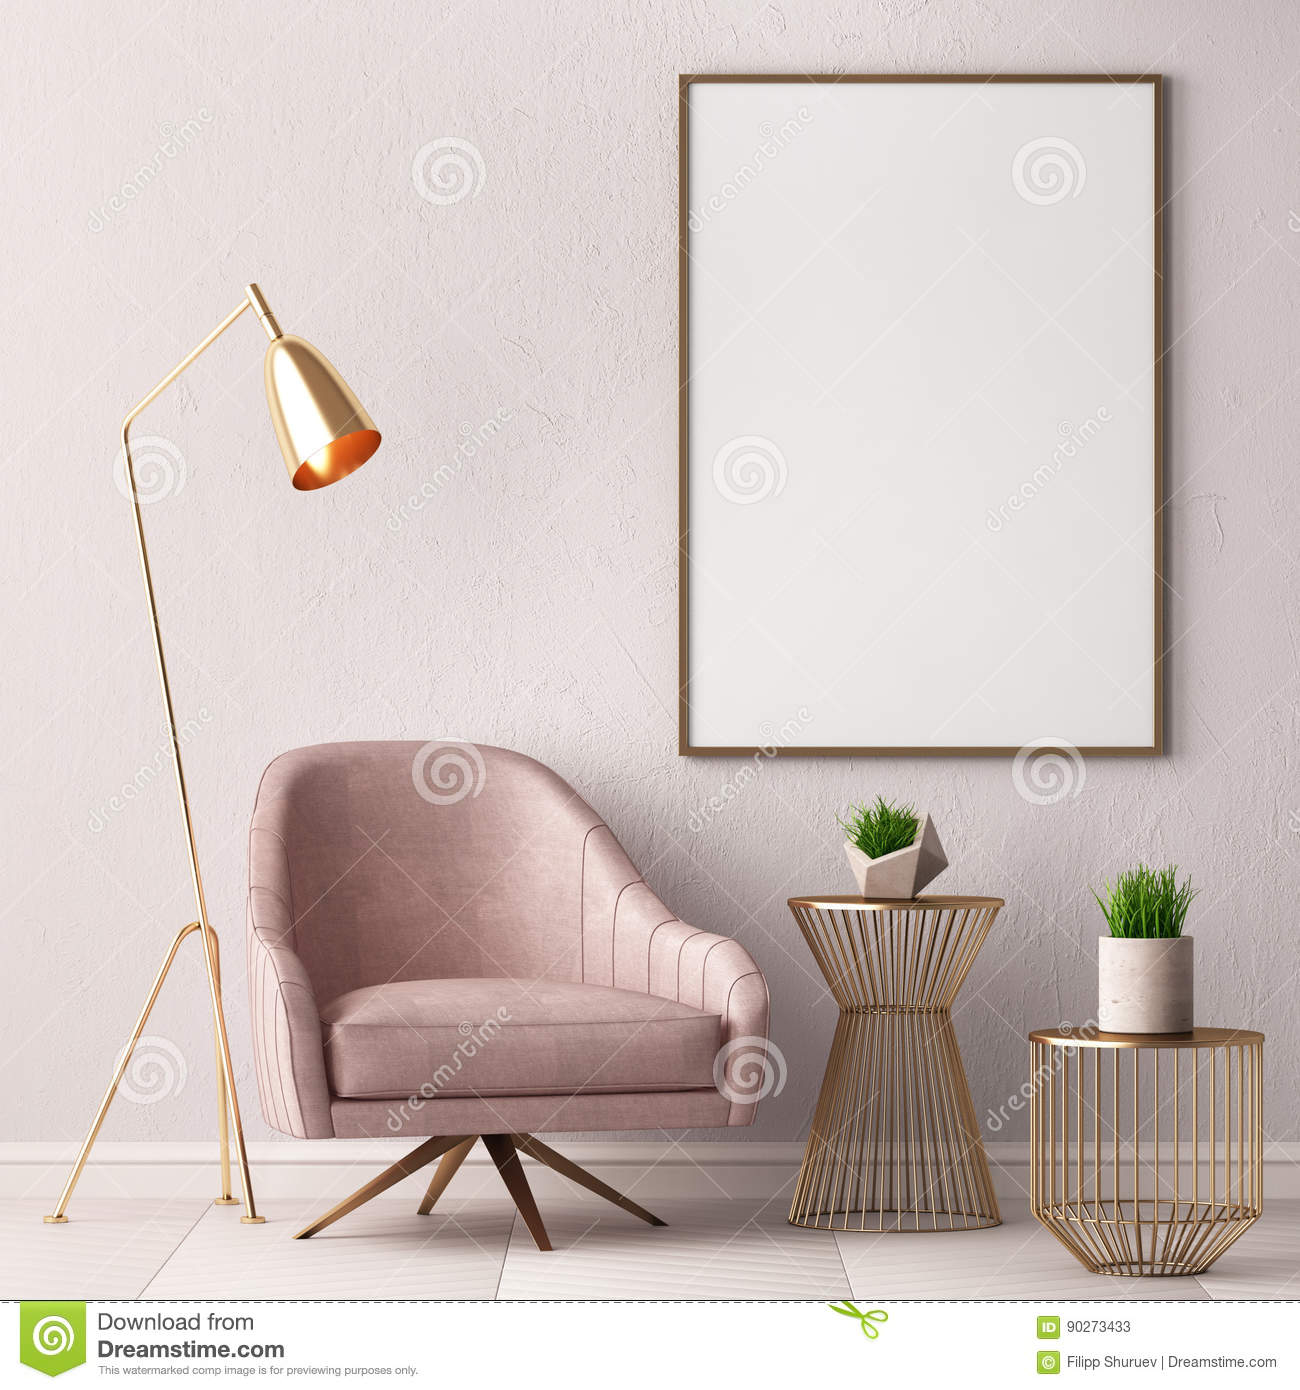 Awe Inspiring Mock Up Poster In The Interior With A Chair And A Table 3D Uwap Interior Chair Design Uwaporg